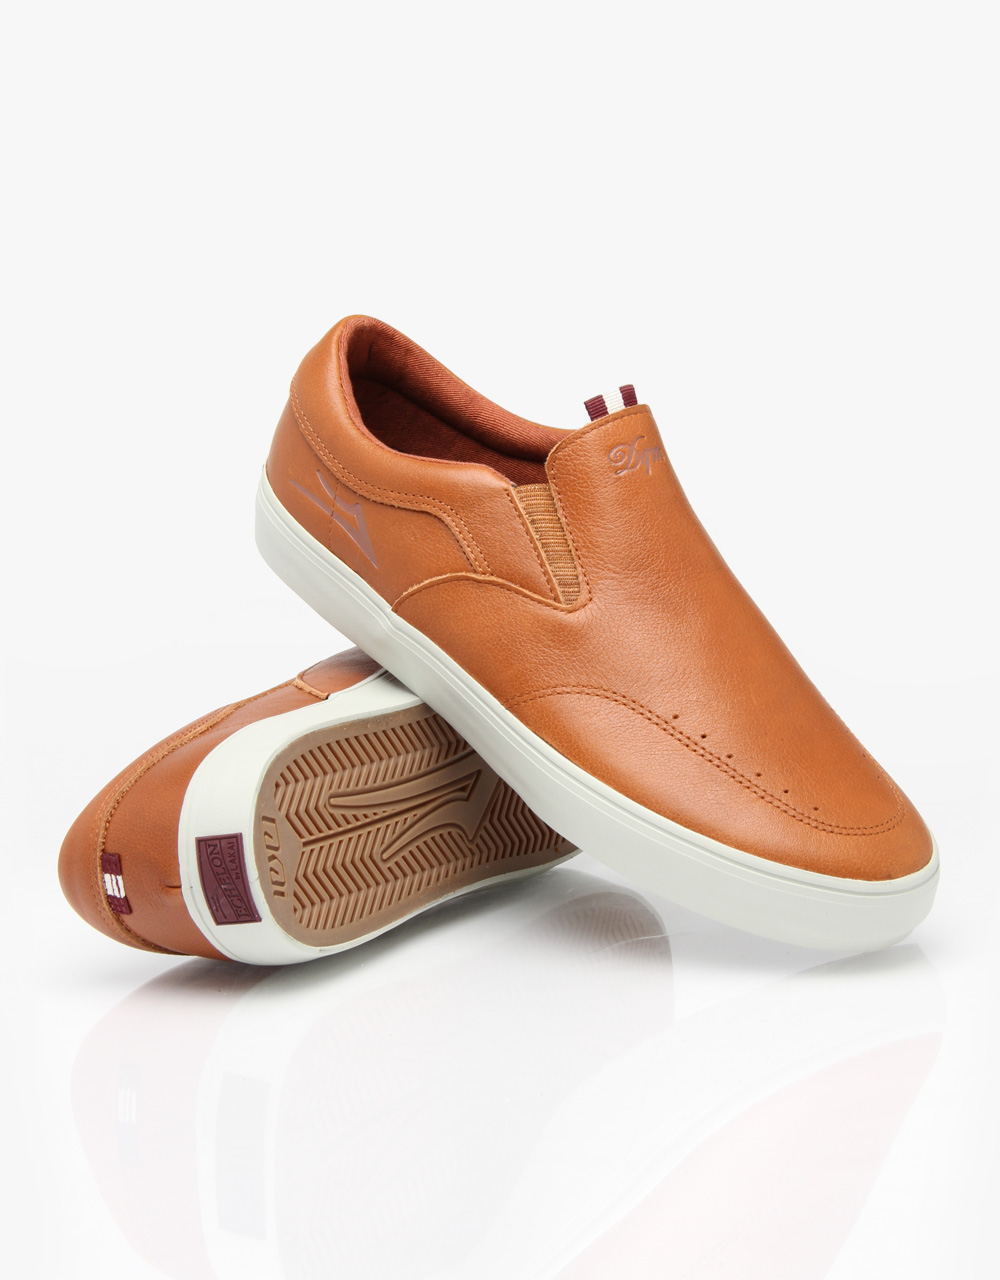 Lakai Shoes Owen Golden Brown Leather Echelon Slip On US SIZE FREE POST New Skateboard Sneakers